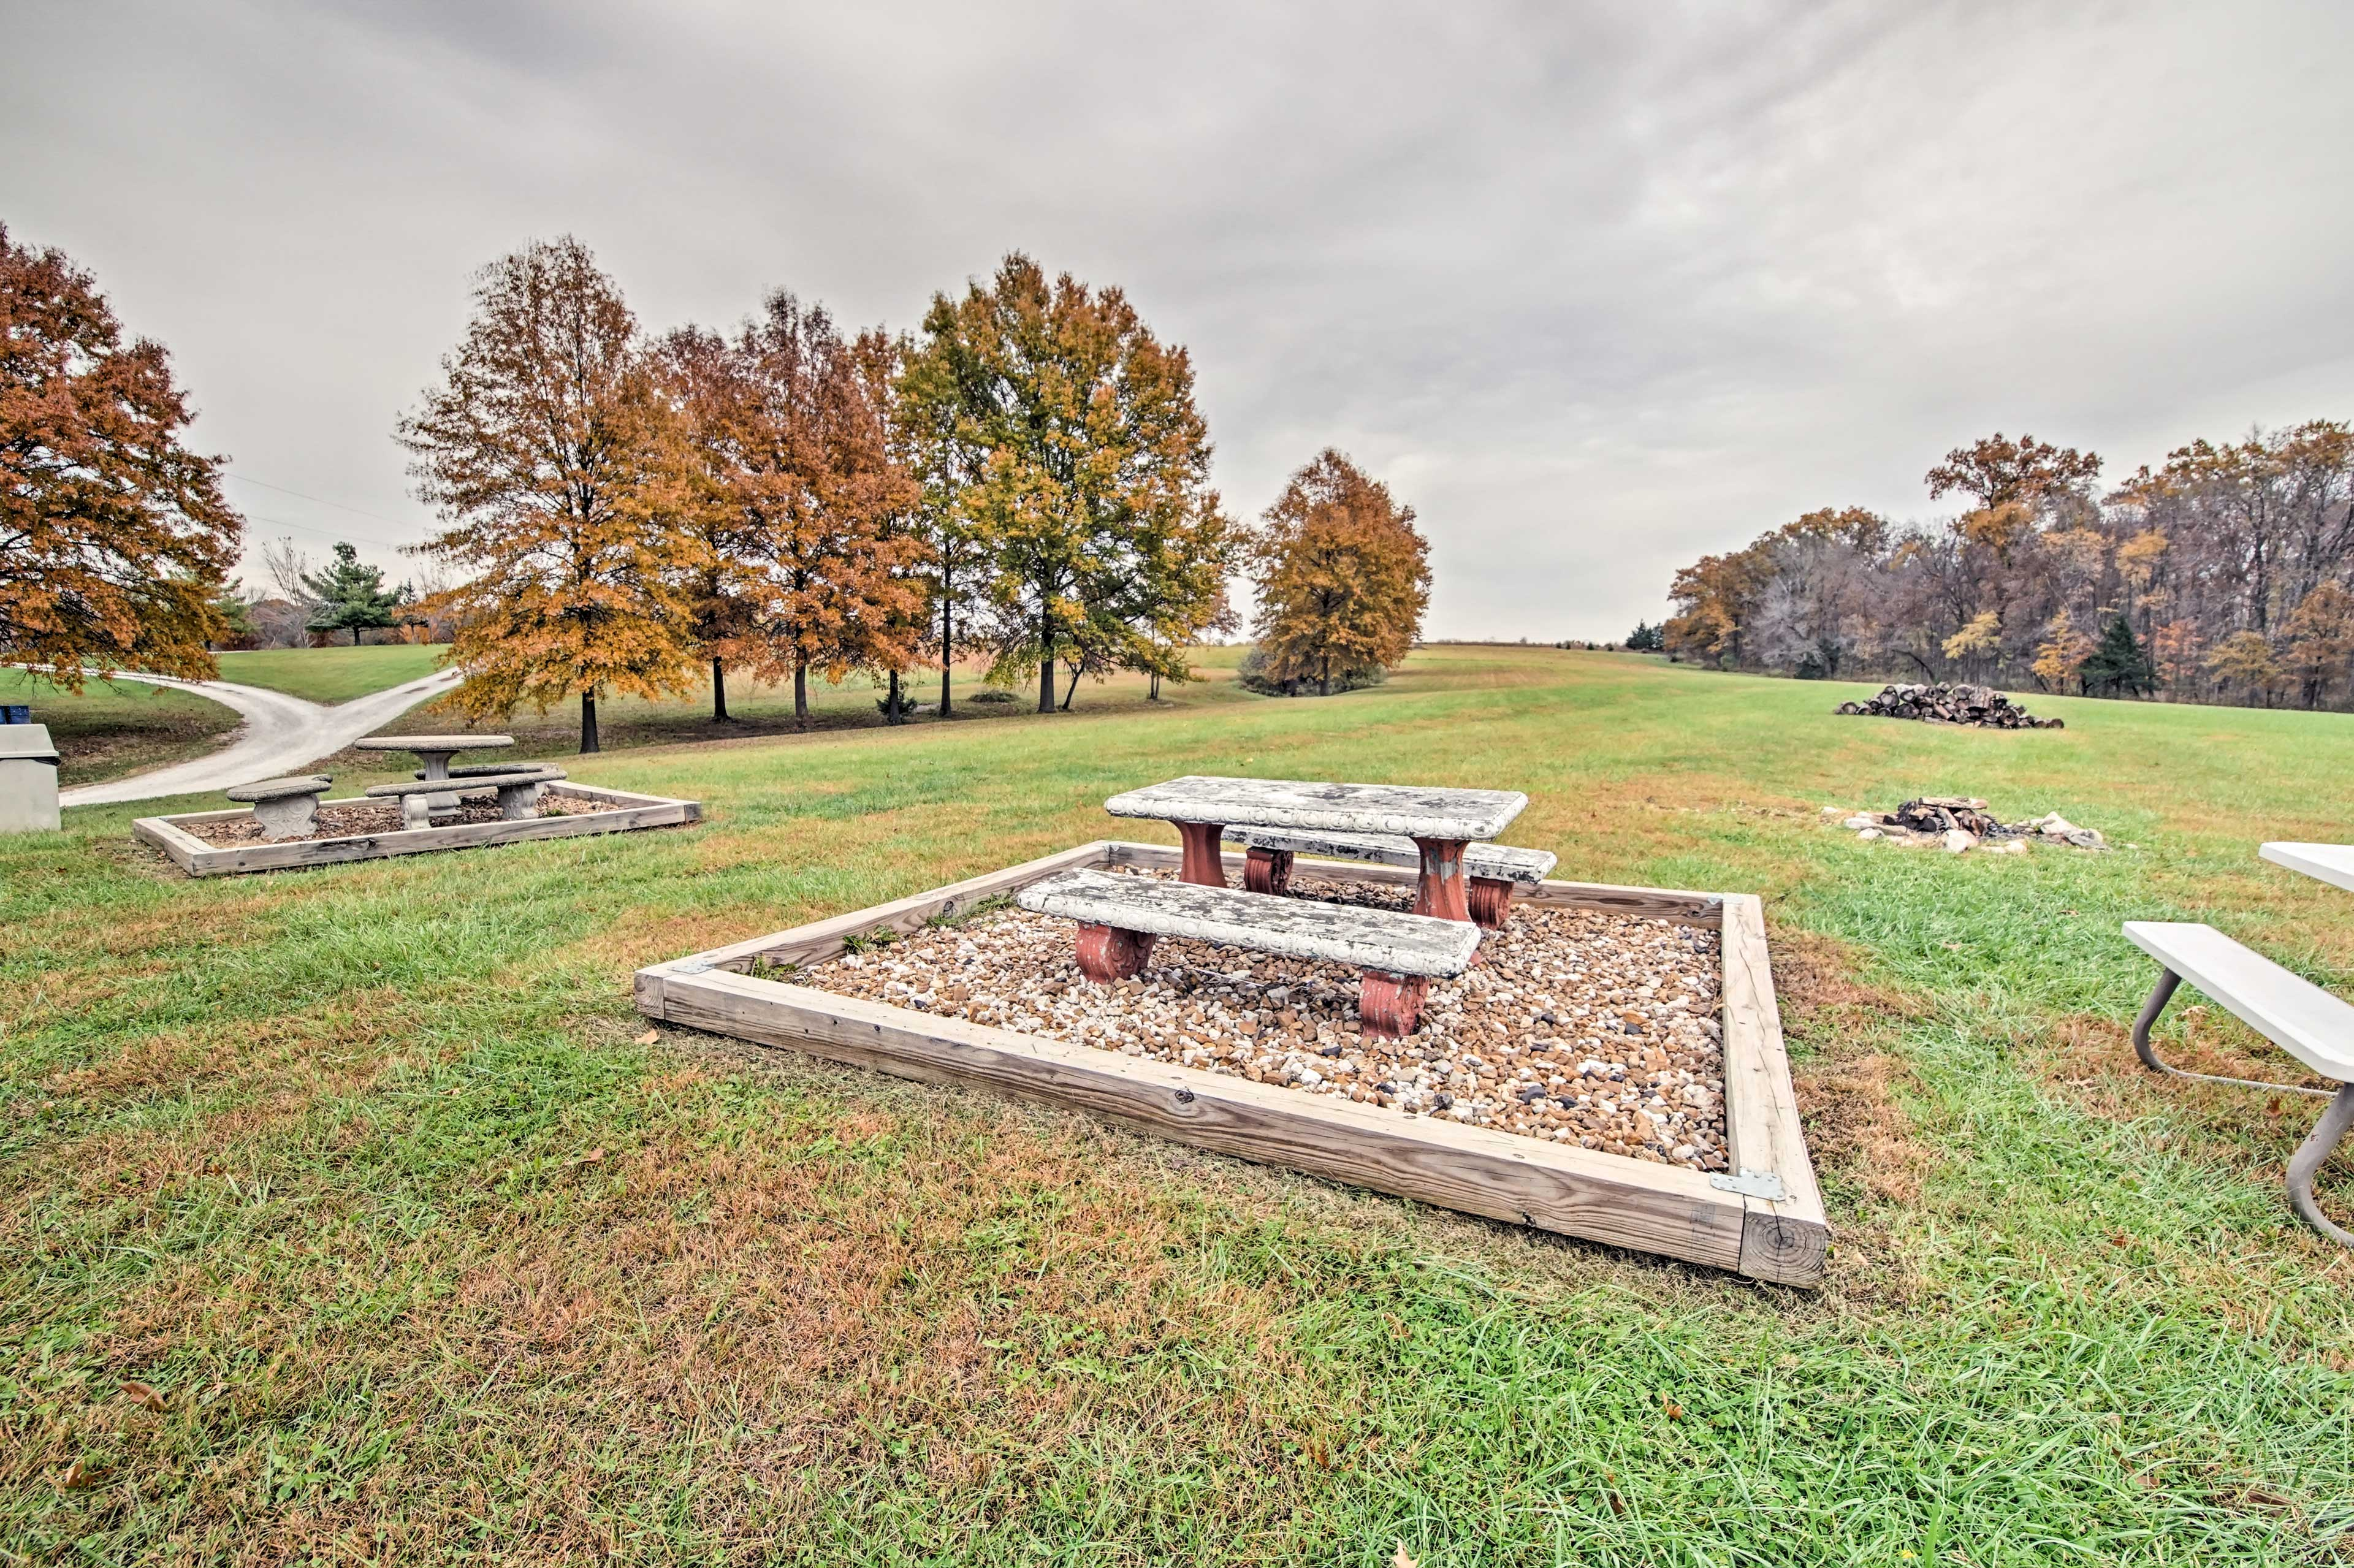 Behind the cabins, you'll find several picnic tables and fire pits!